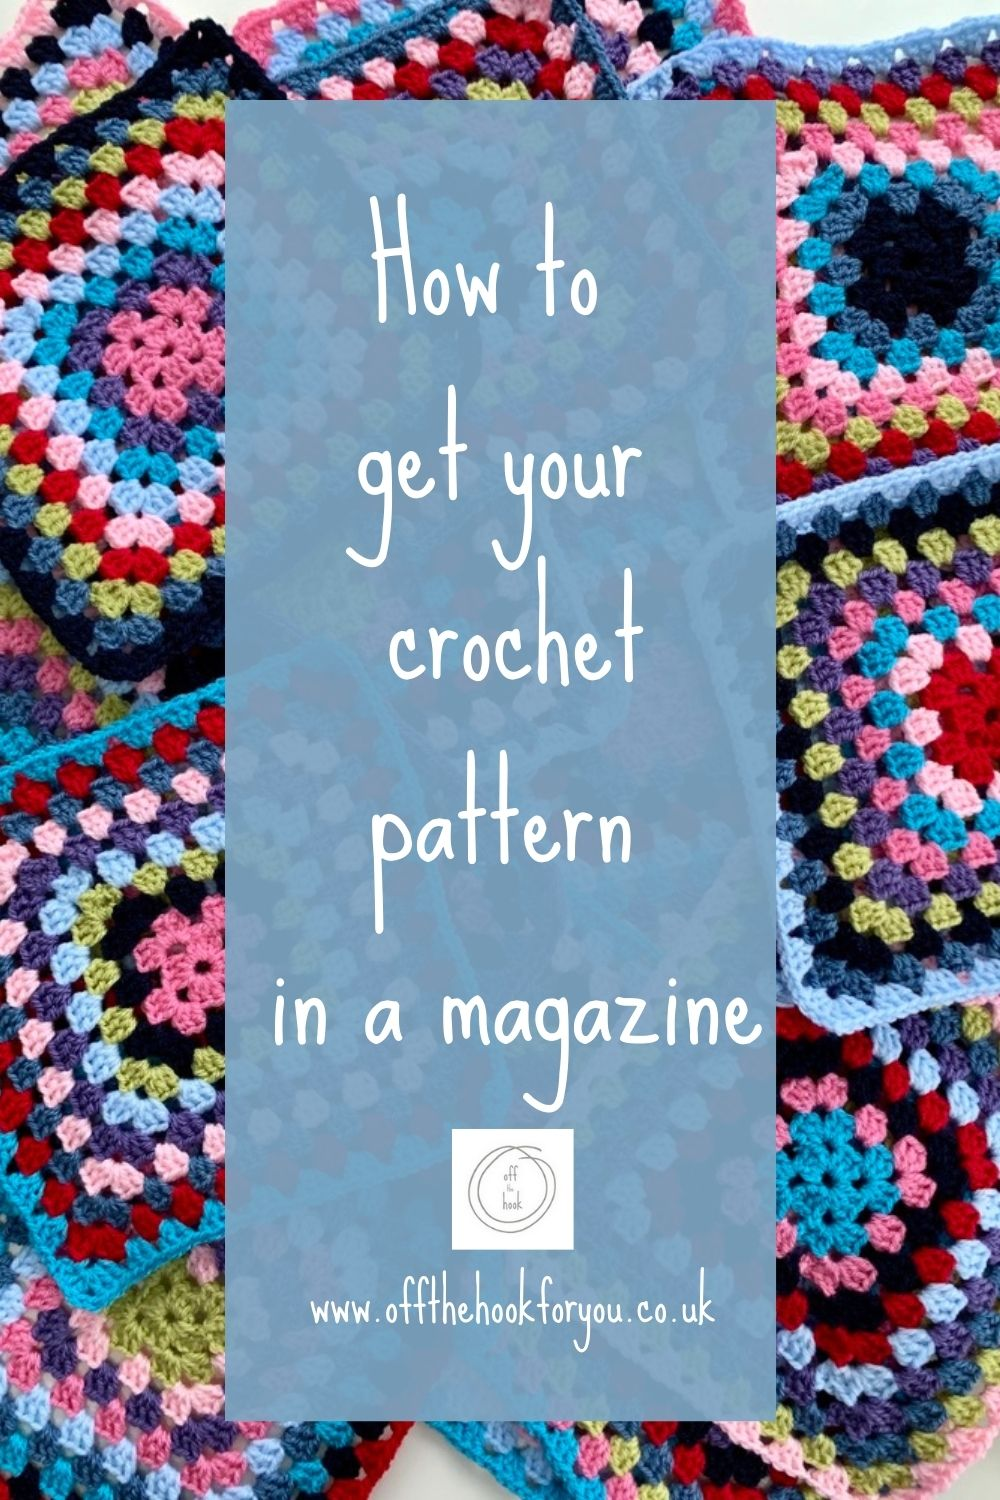 How to get your crochet pattern in a magazine